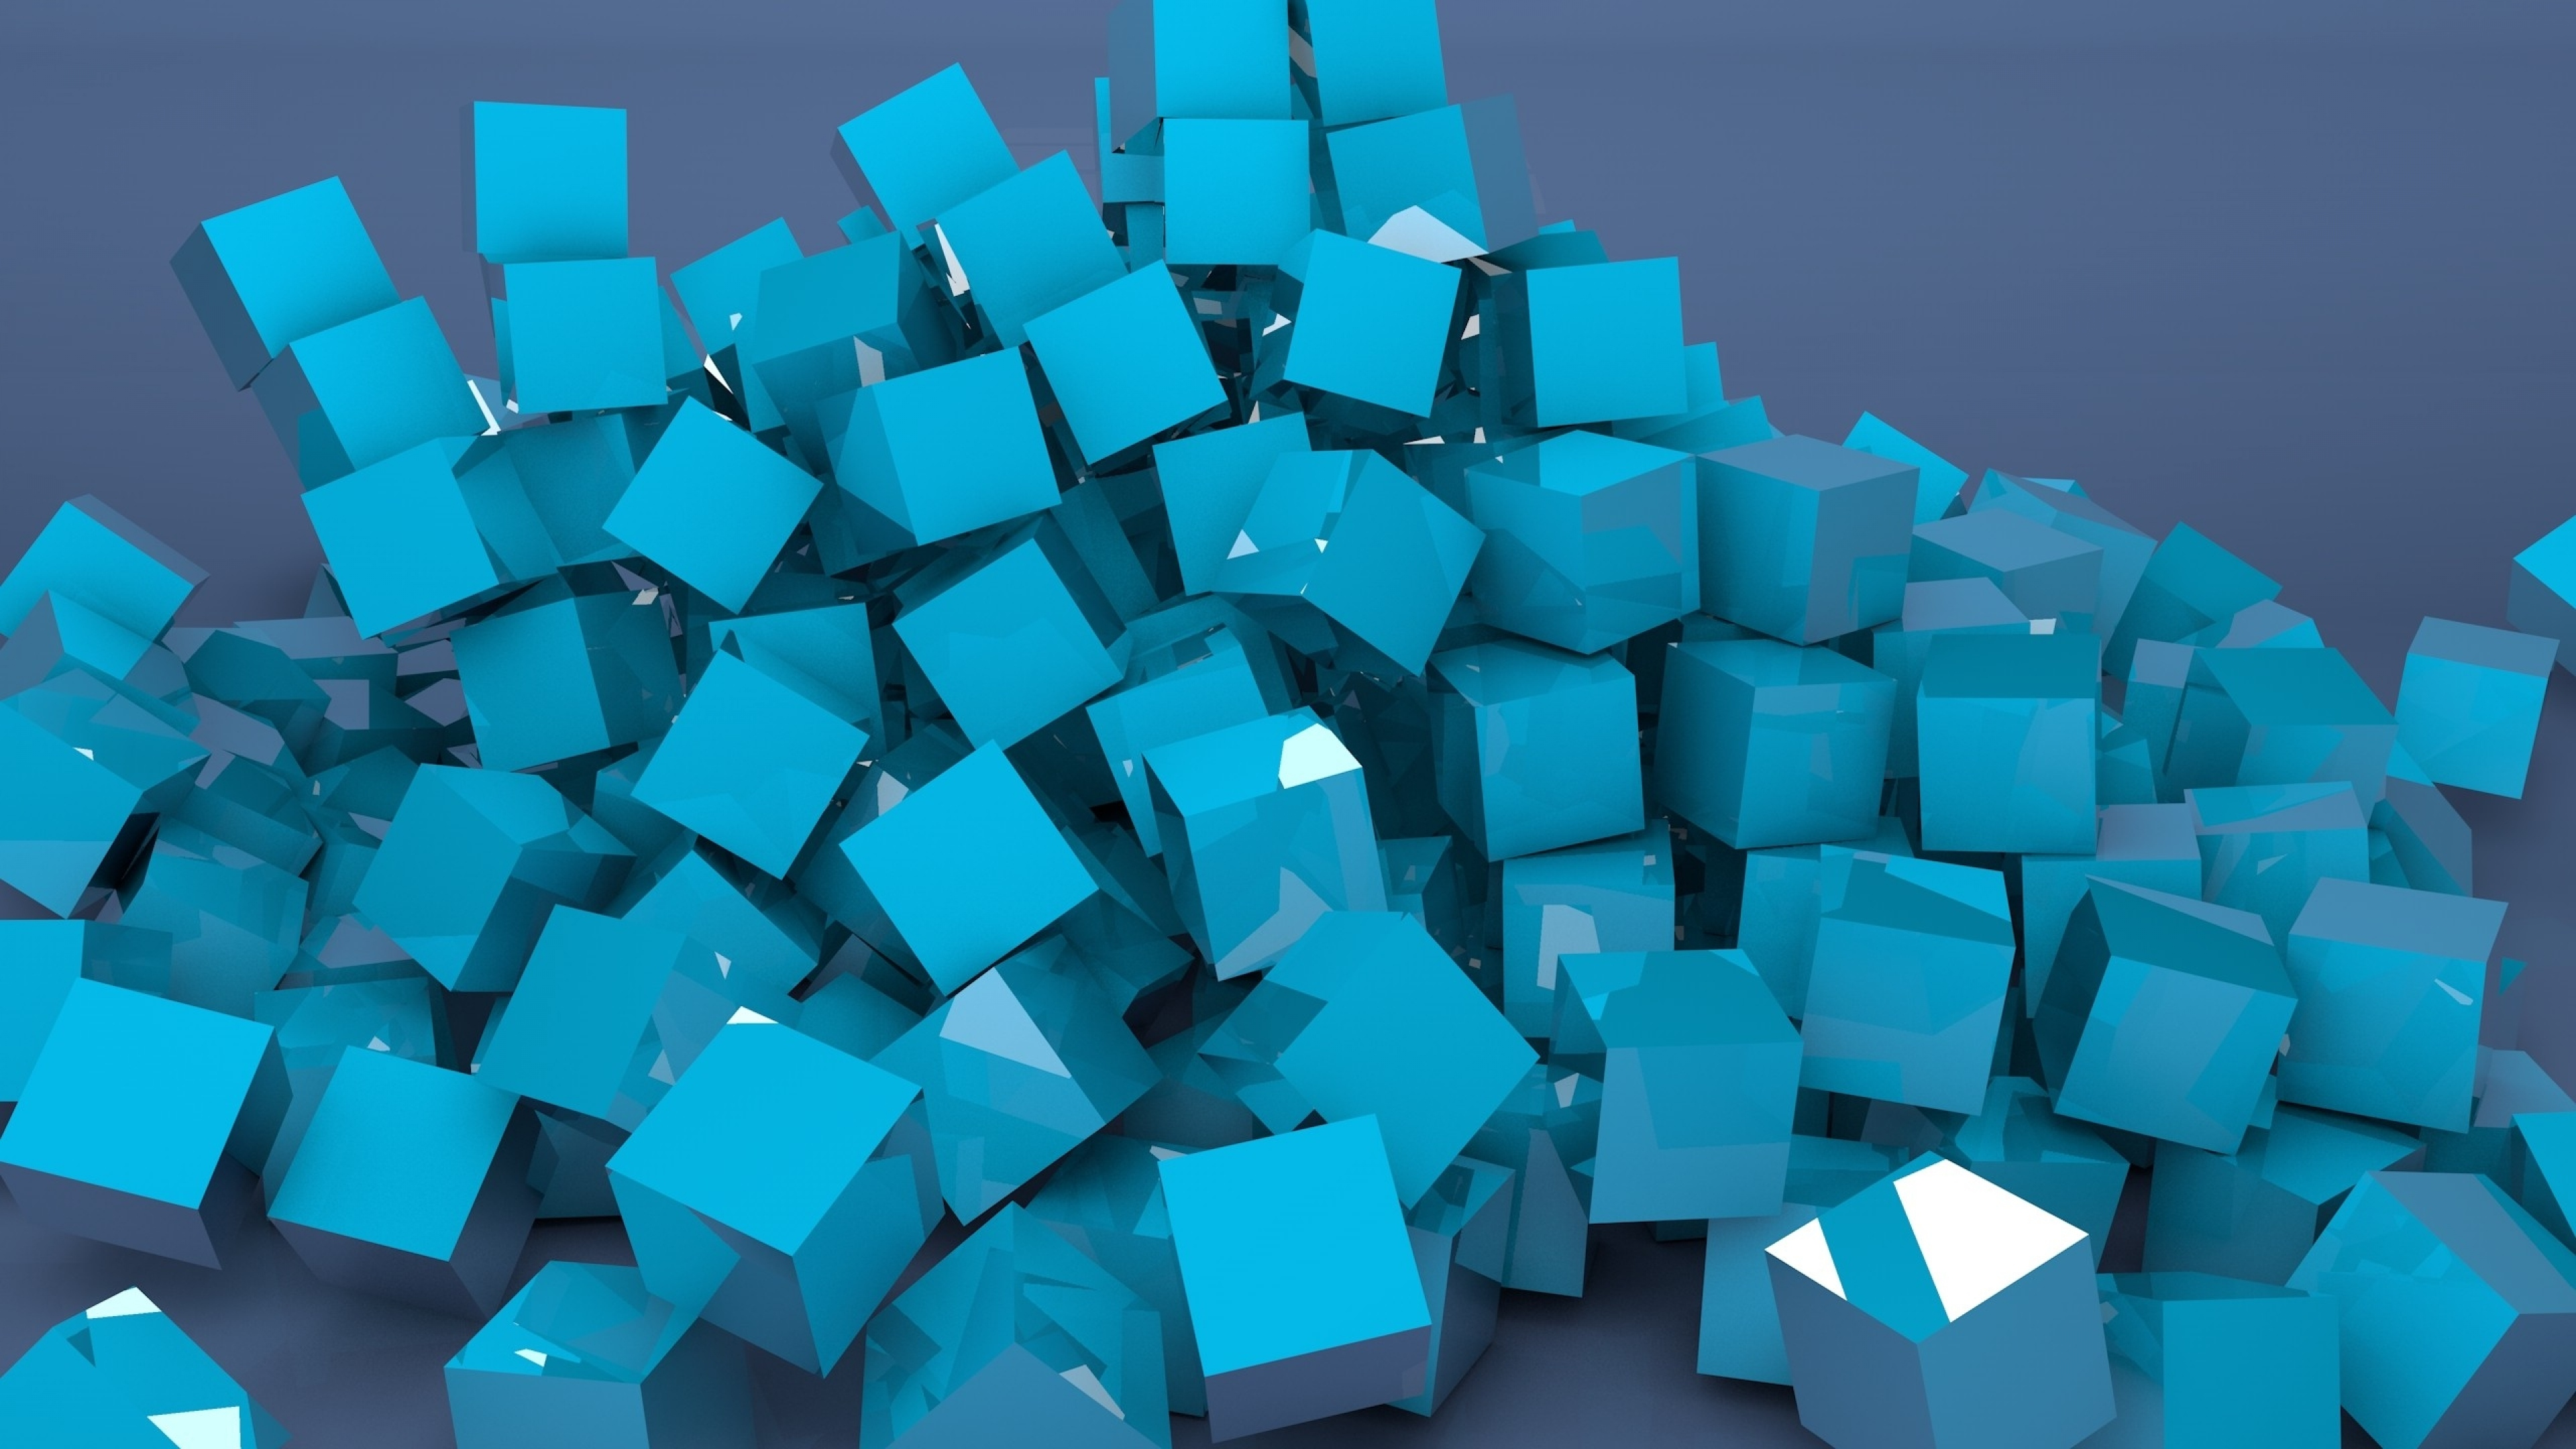 Blue 3d Blocks Widescreen Wallpaper 60959 3840x2160 Px